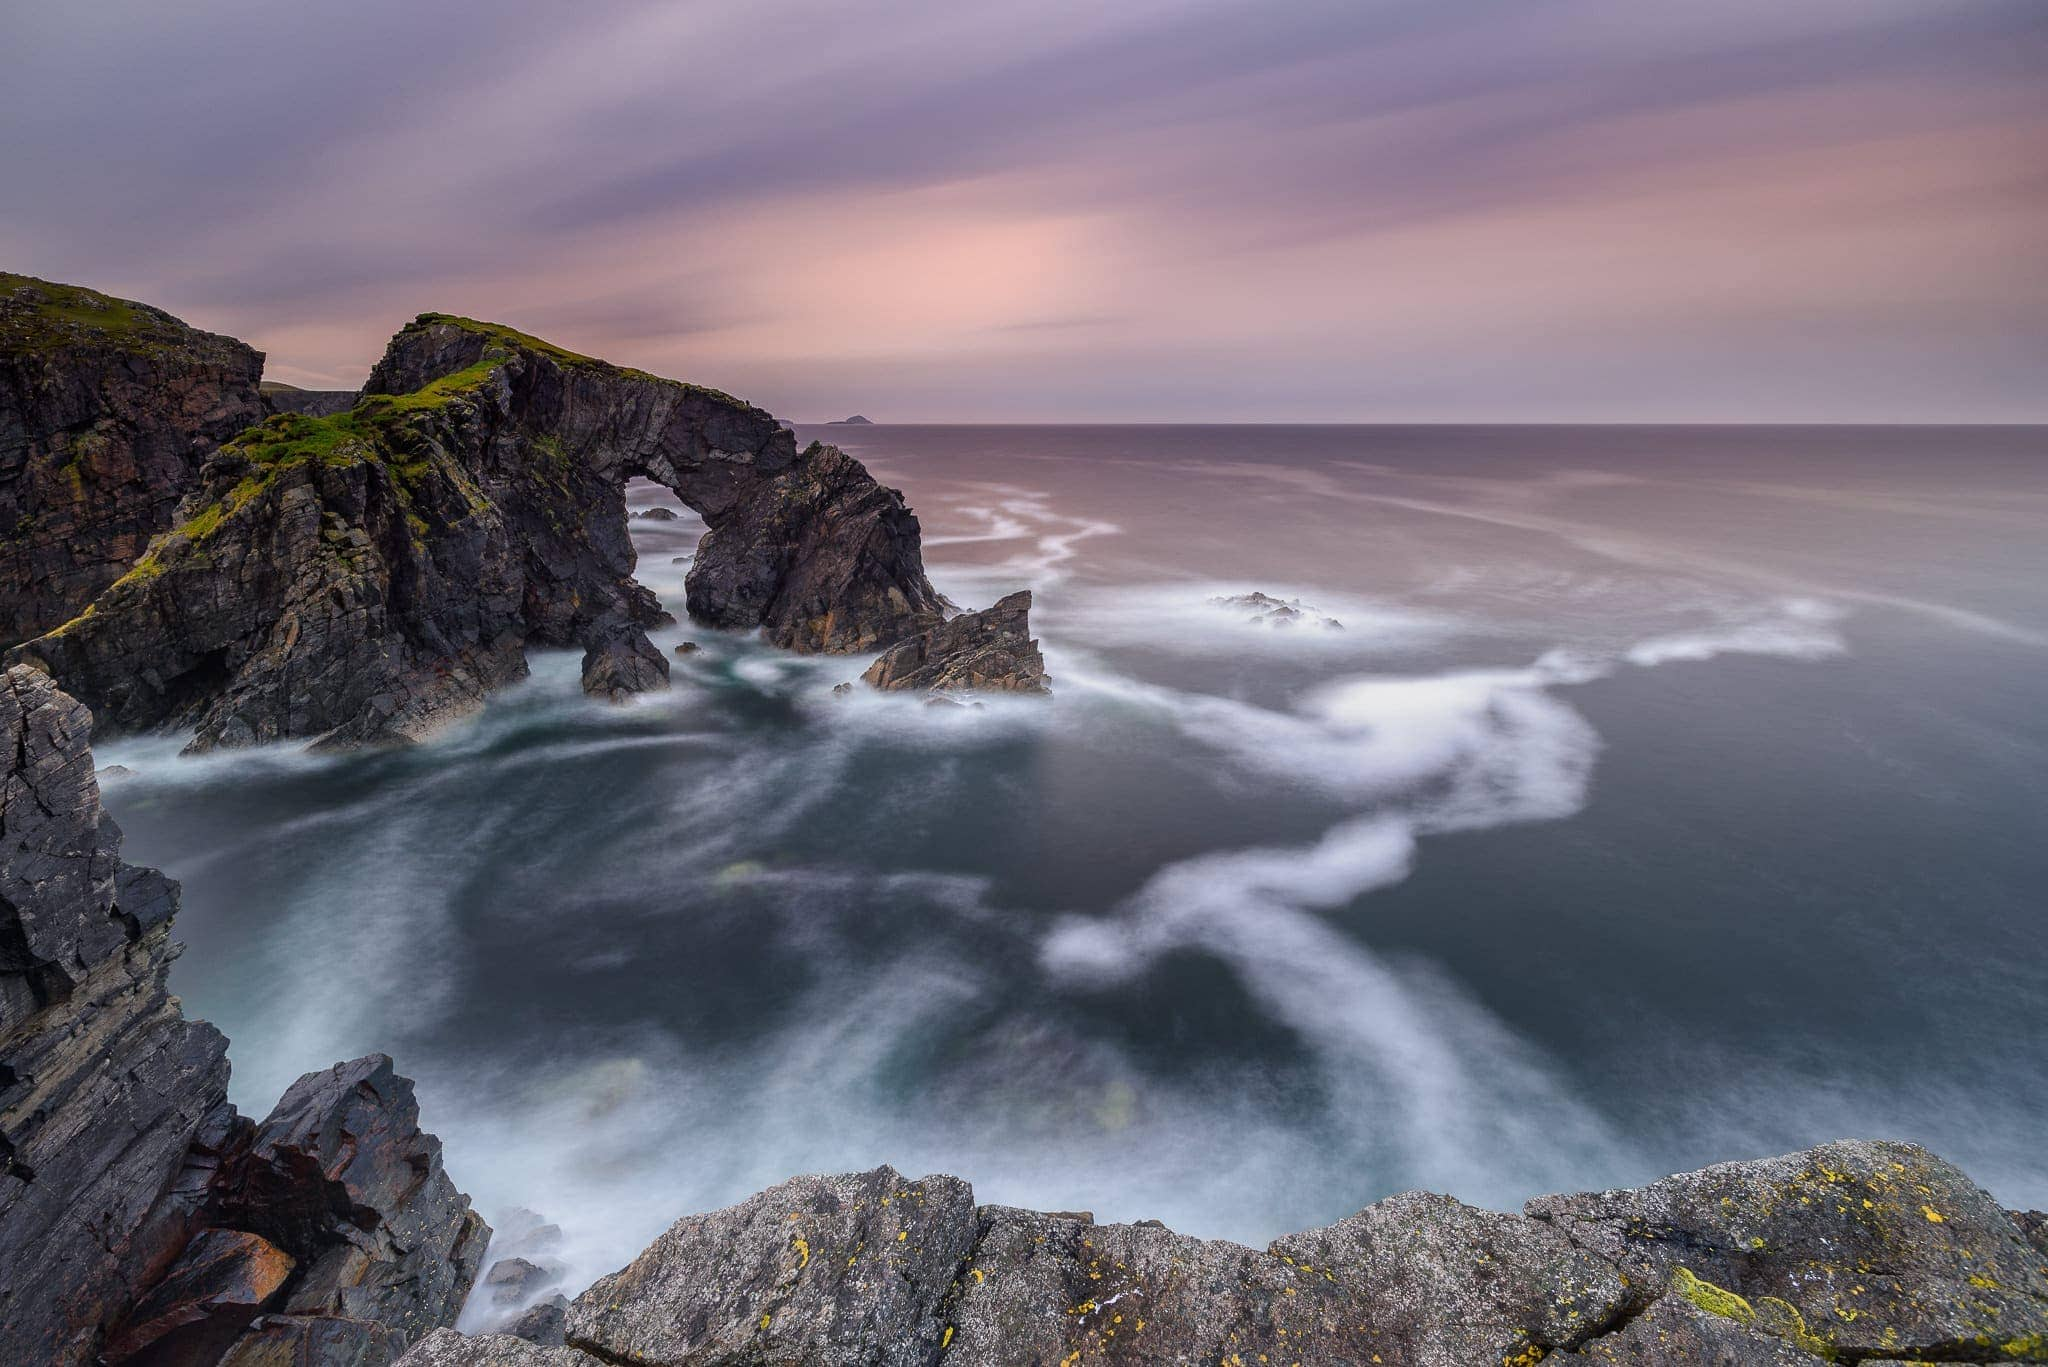 Francesco Gola Seascape Landscape Photography Scotland Arch Outer Hebrides Long Exposure